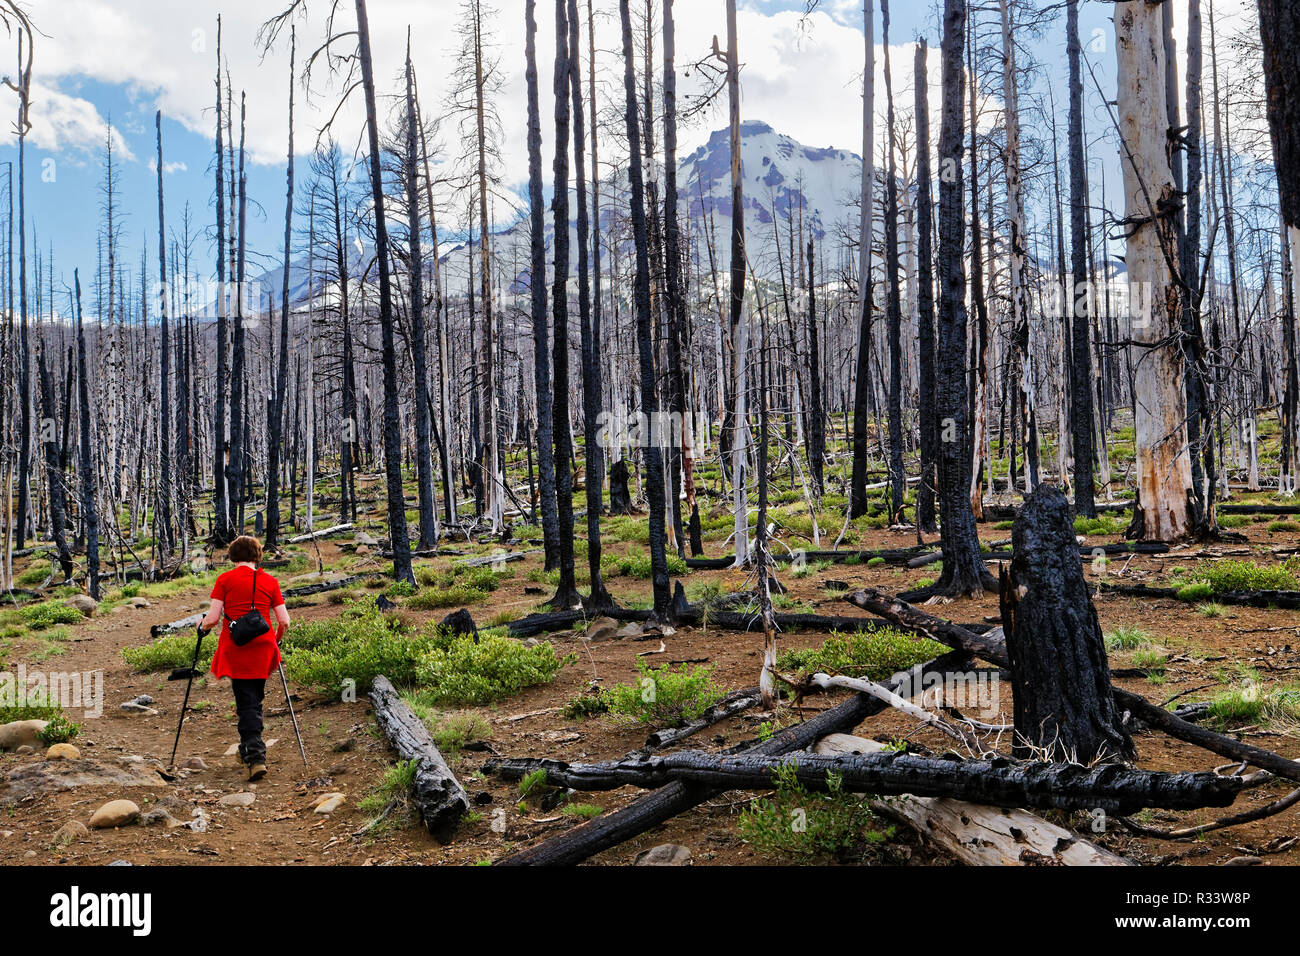 42,880.02506 woman hiking in stark horrible blackened burned out bare trees remaining after a major conifer tree U.S. National Forest fire wildfire - Stock Image